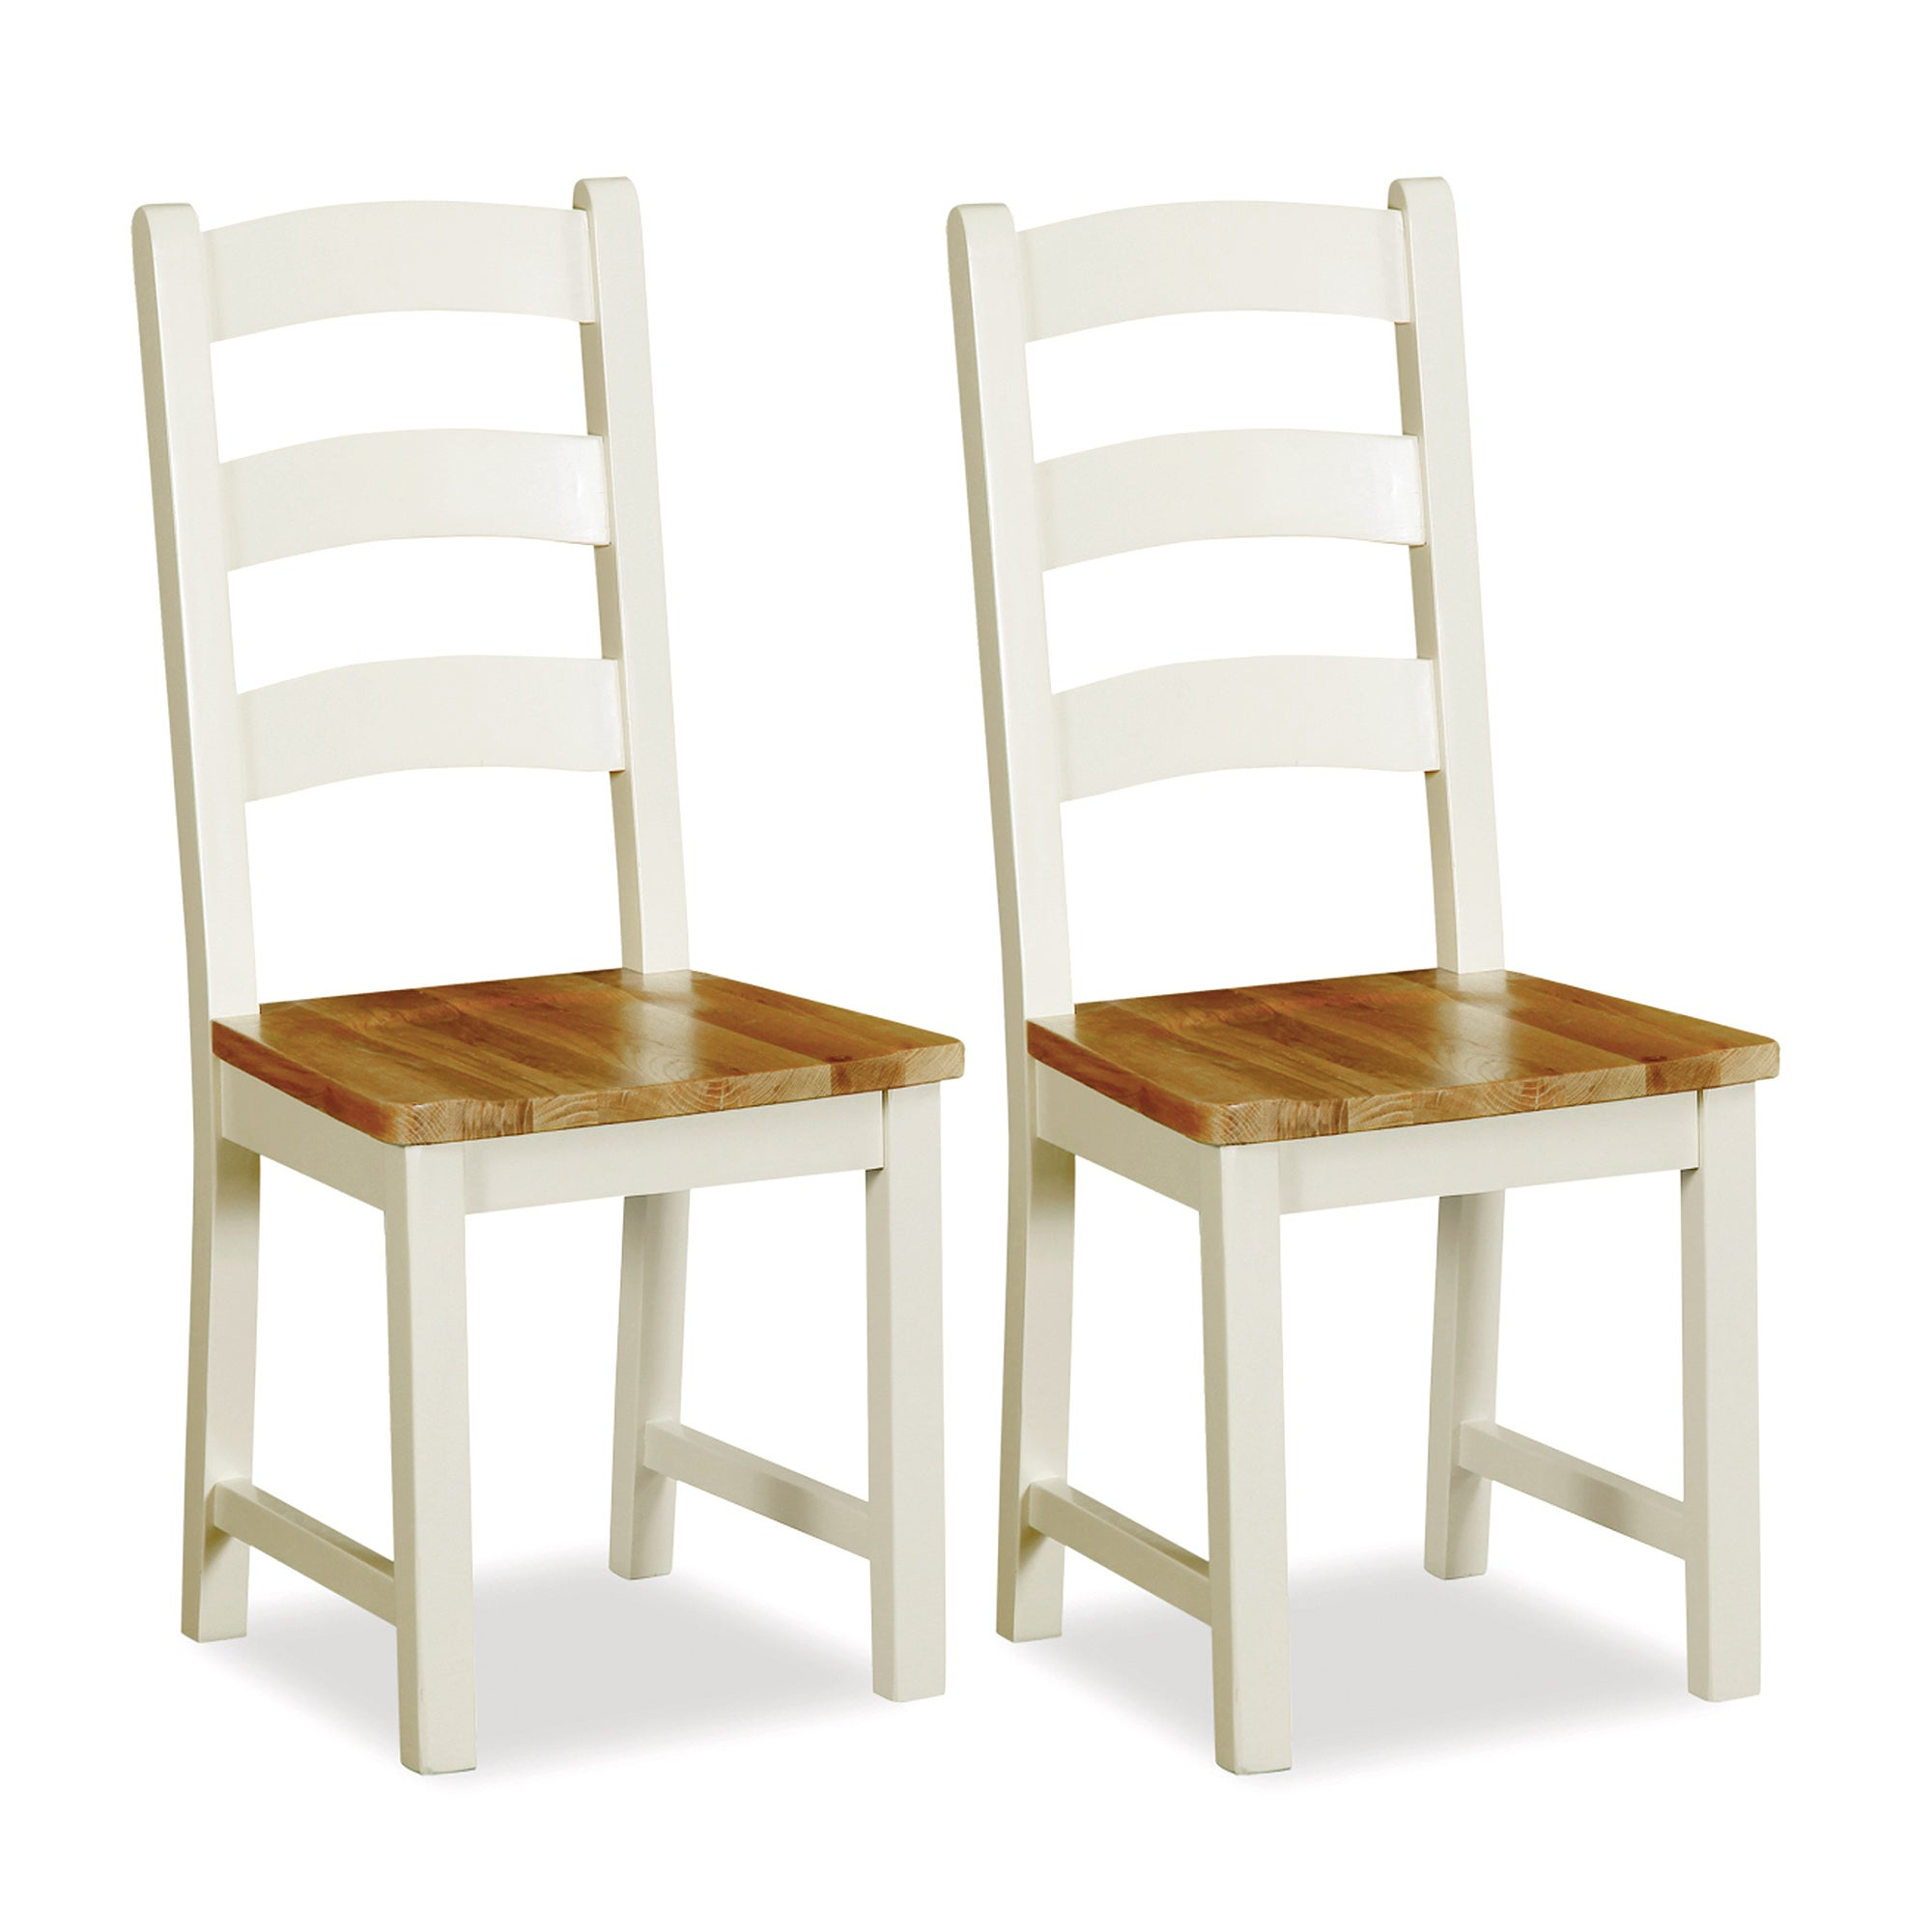 Truro Pair of Oak Slatted Dining Chairs